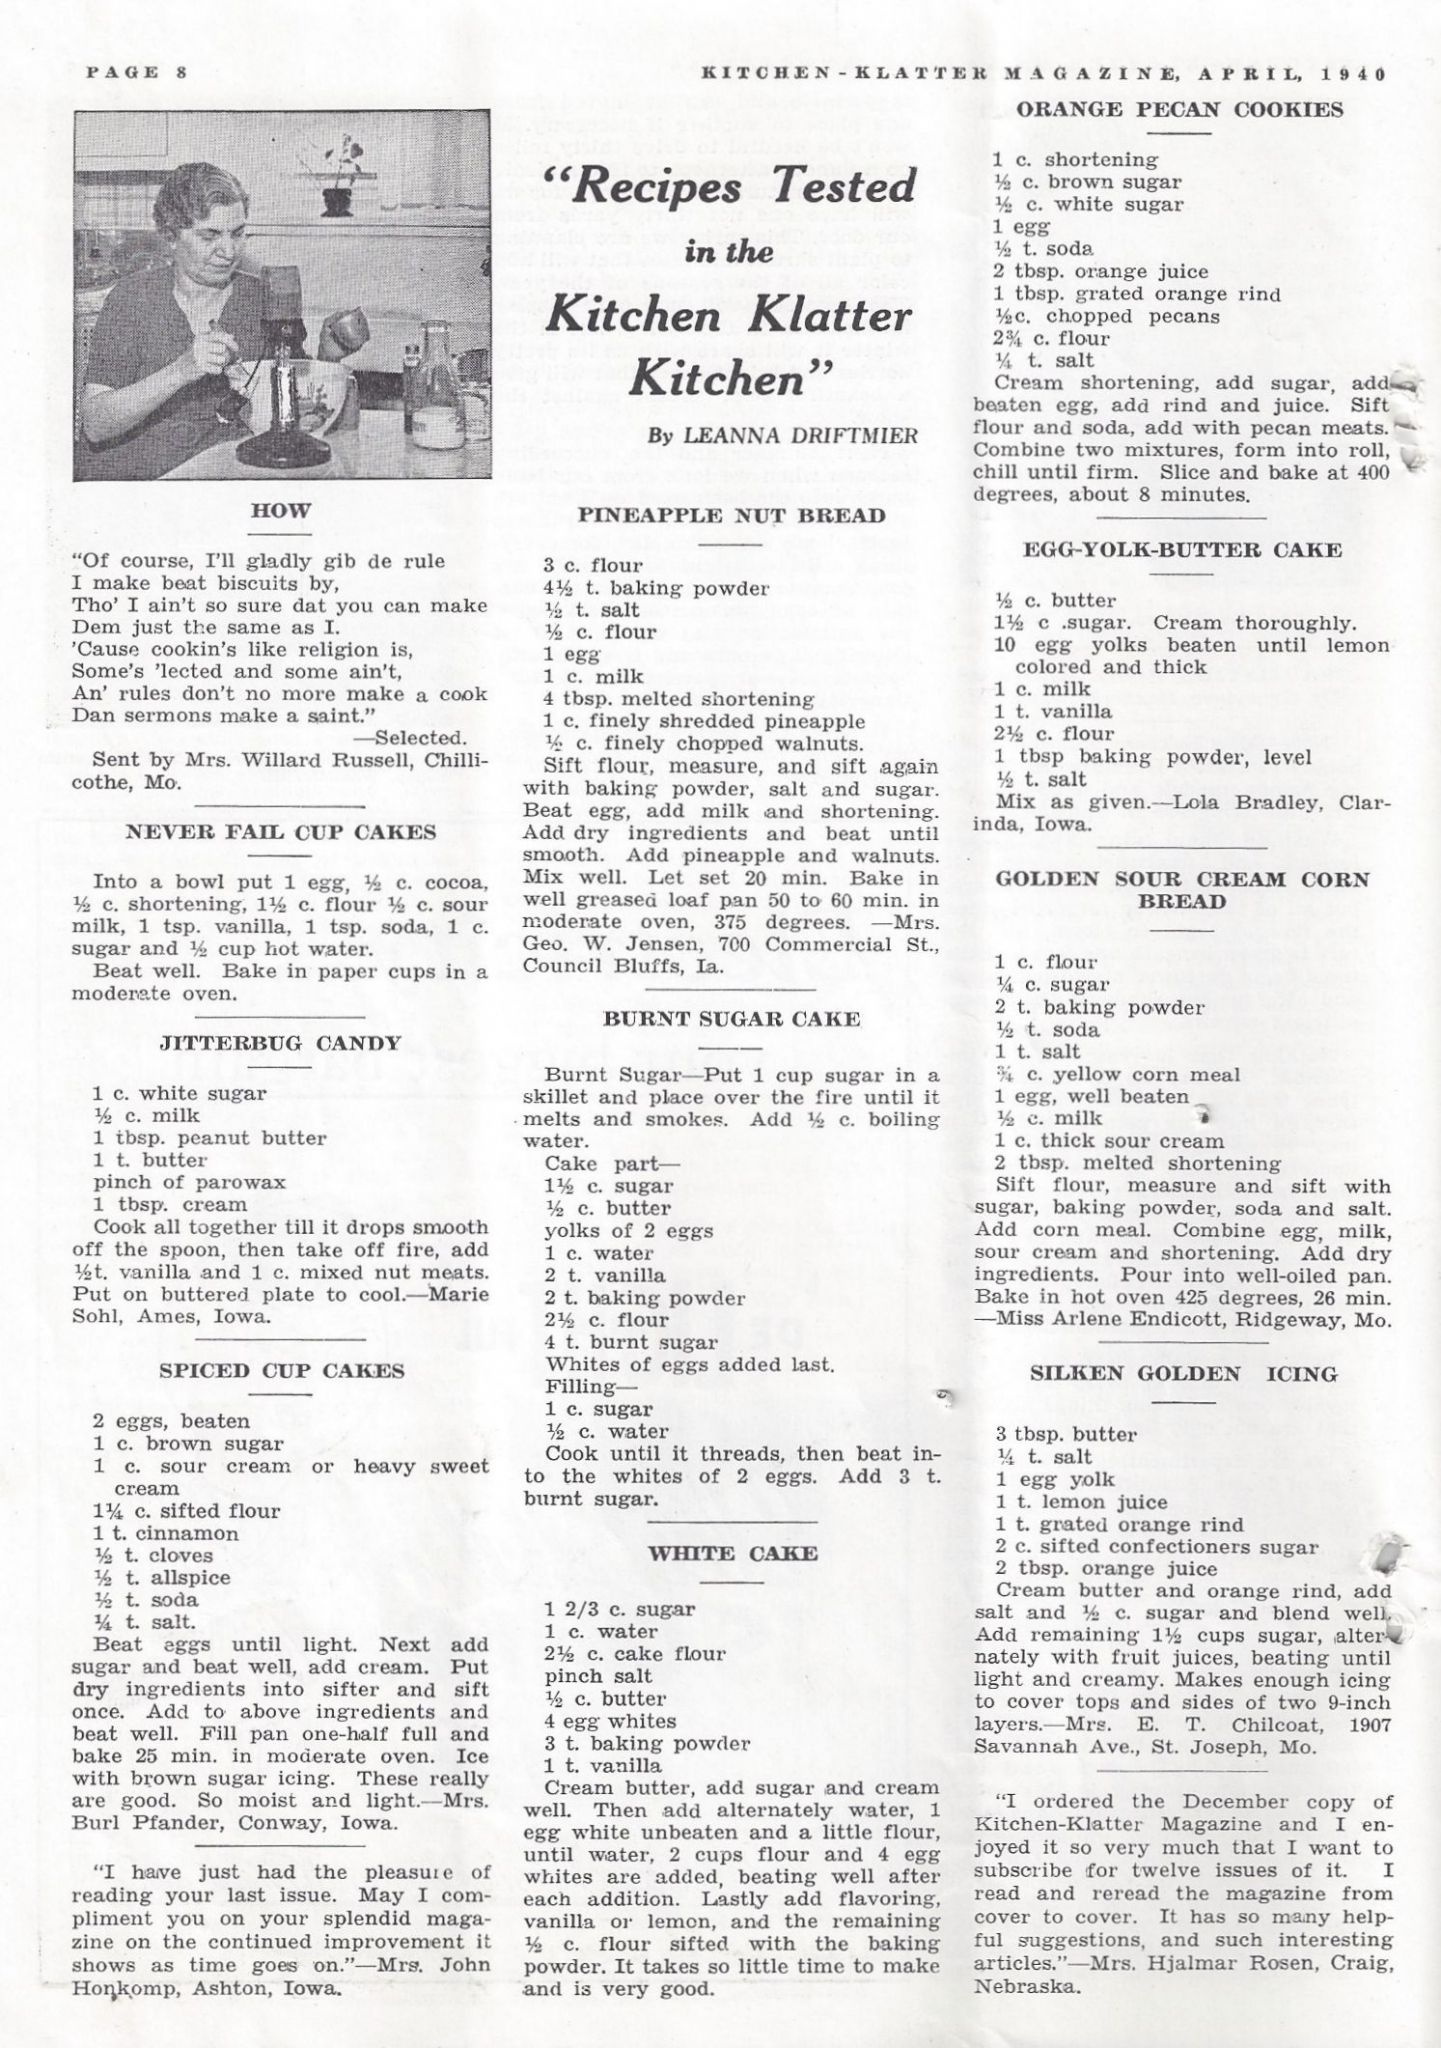 Kitchen Klatter Magazine April 1940 Never Fail Cupcakes